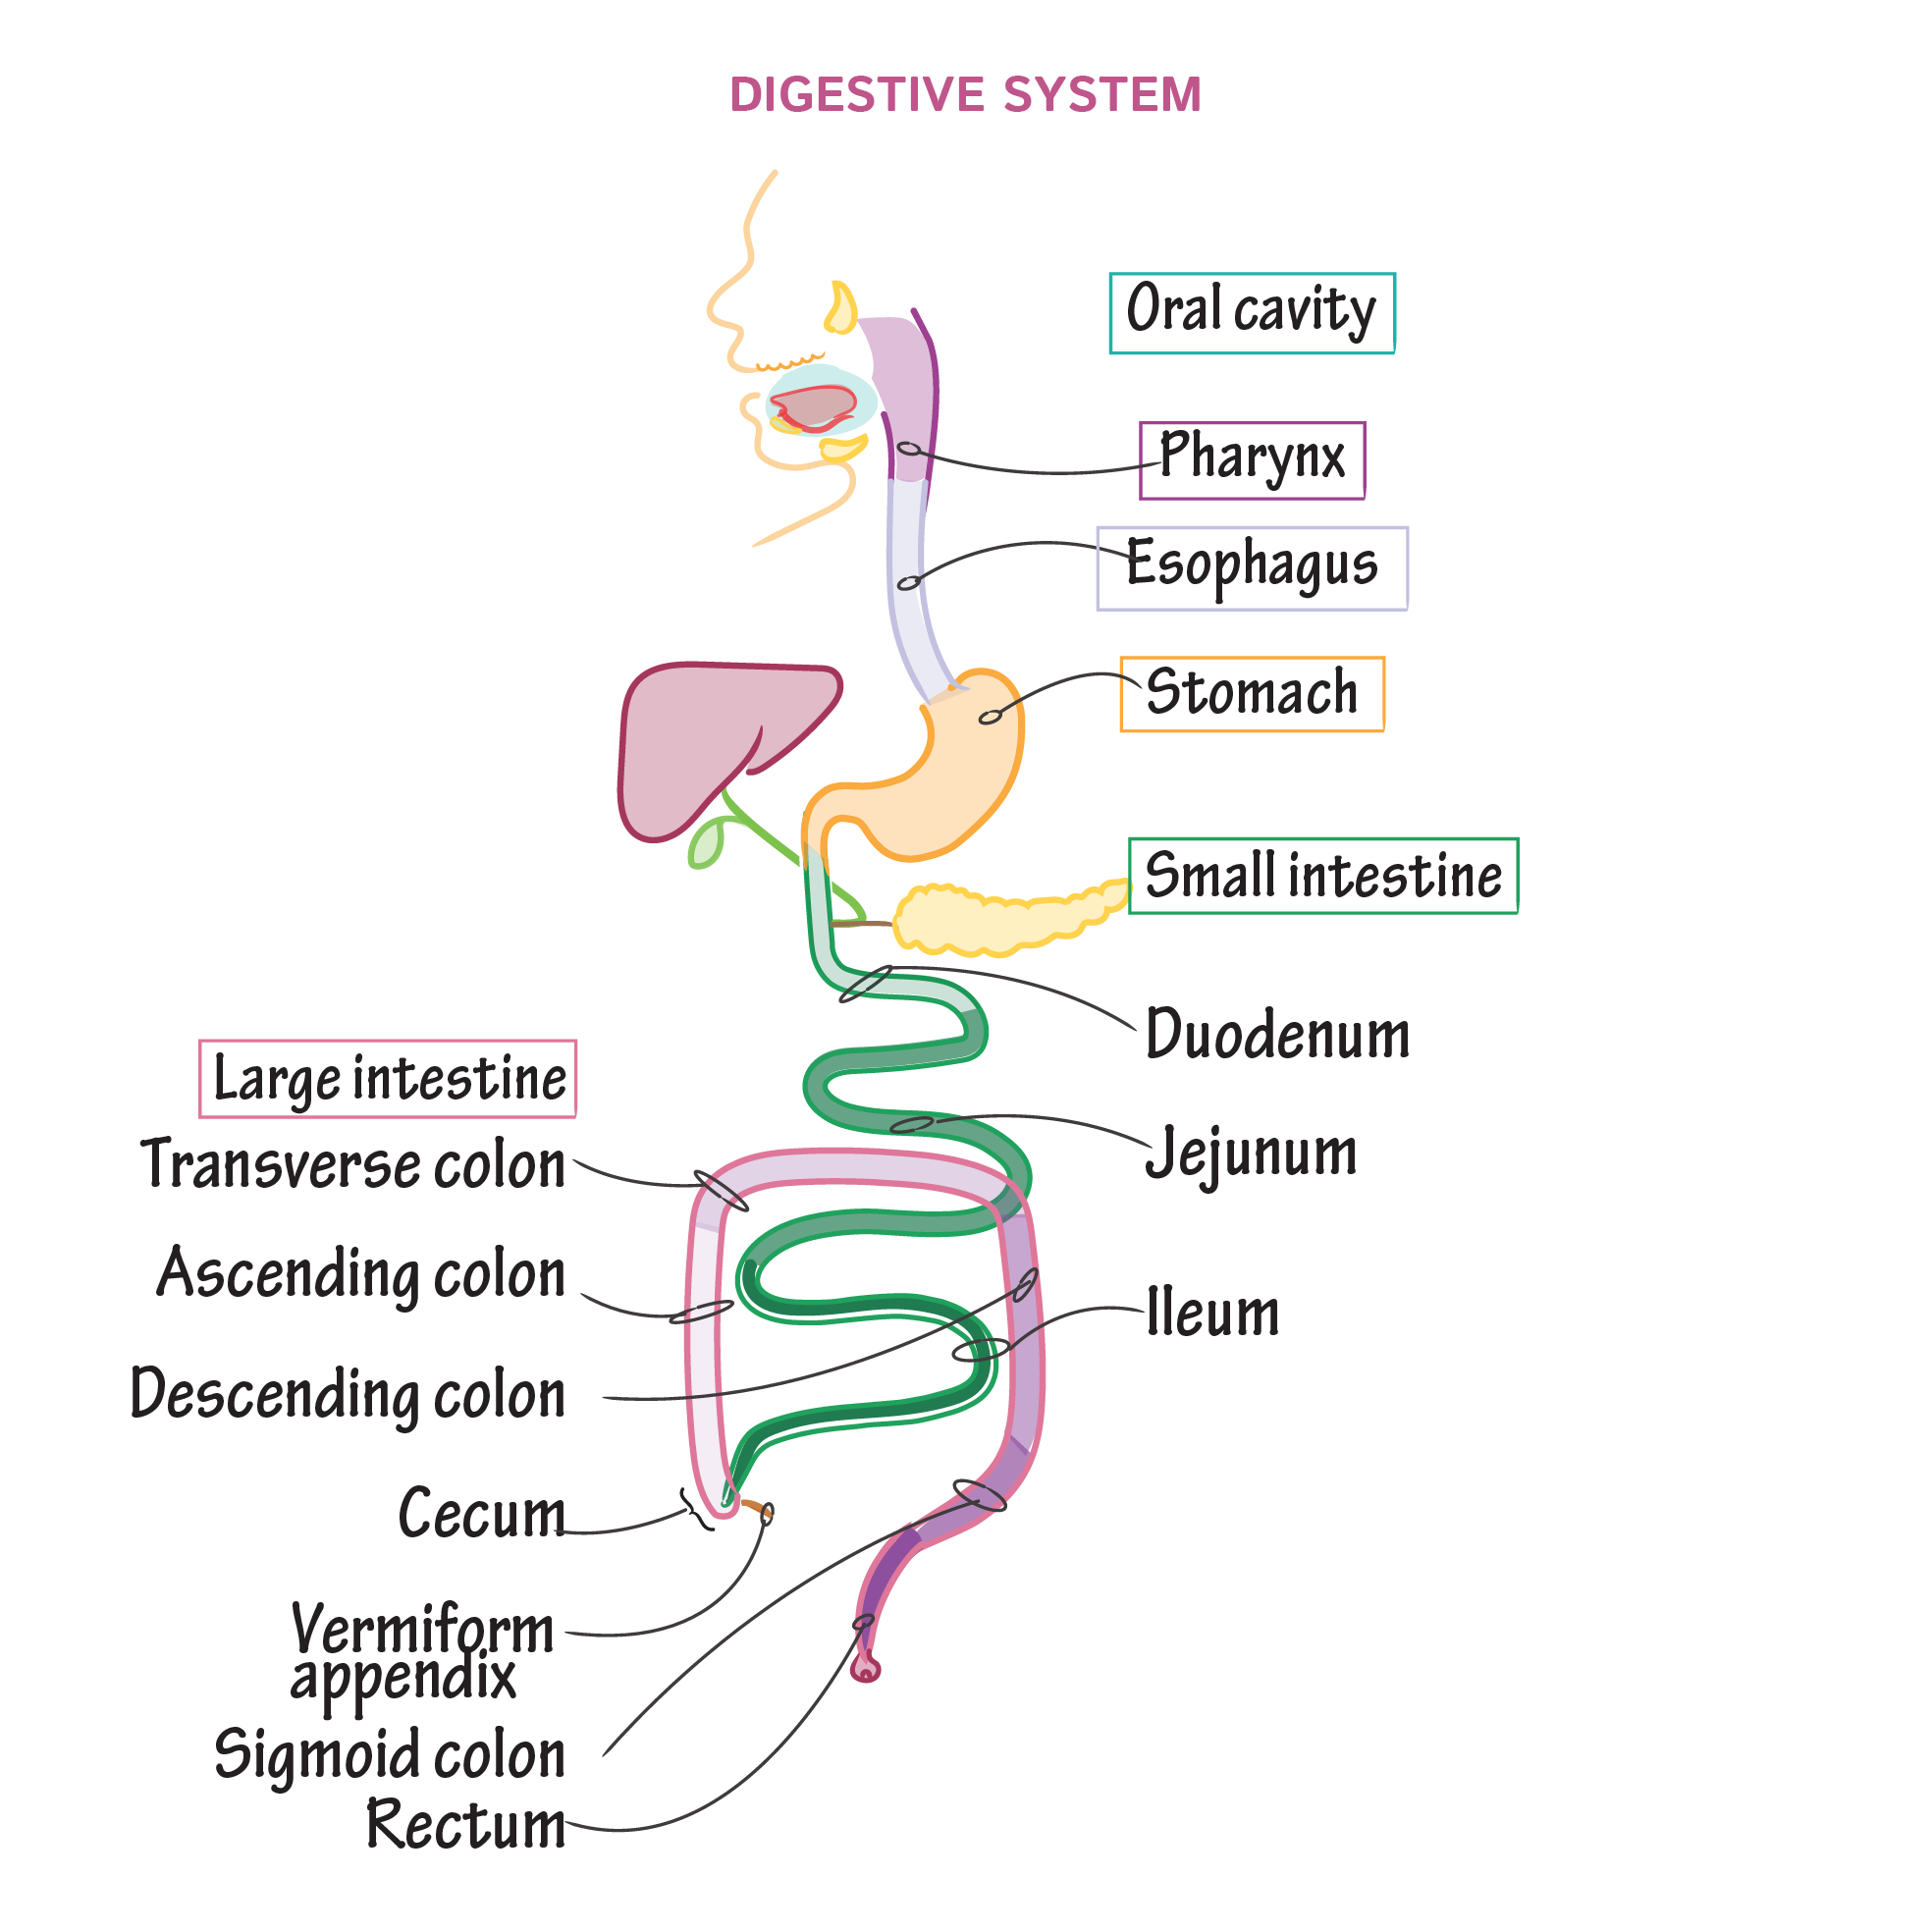 Digestive System Overview (With images) | Digestive system ...